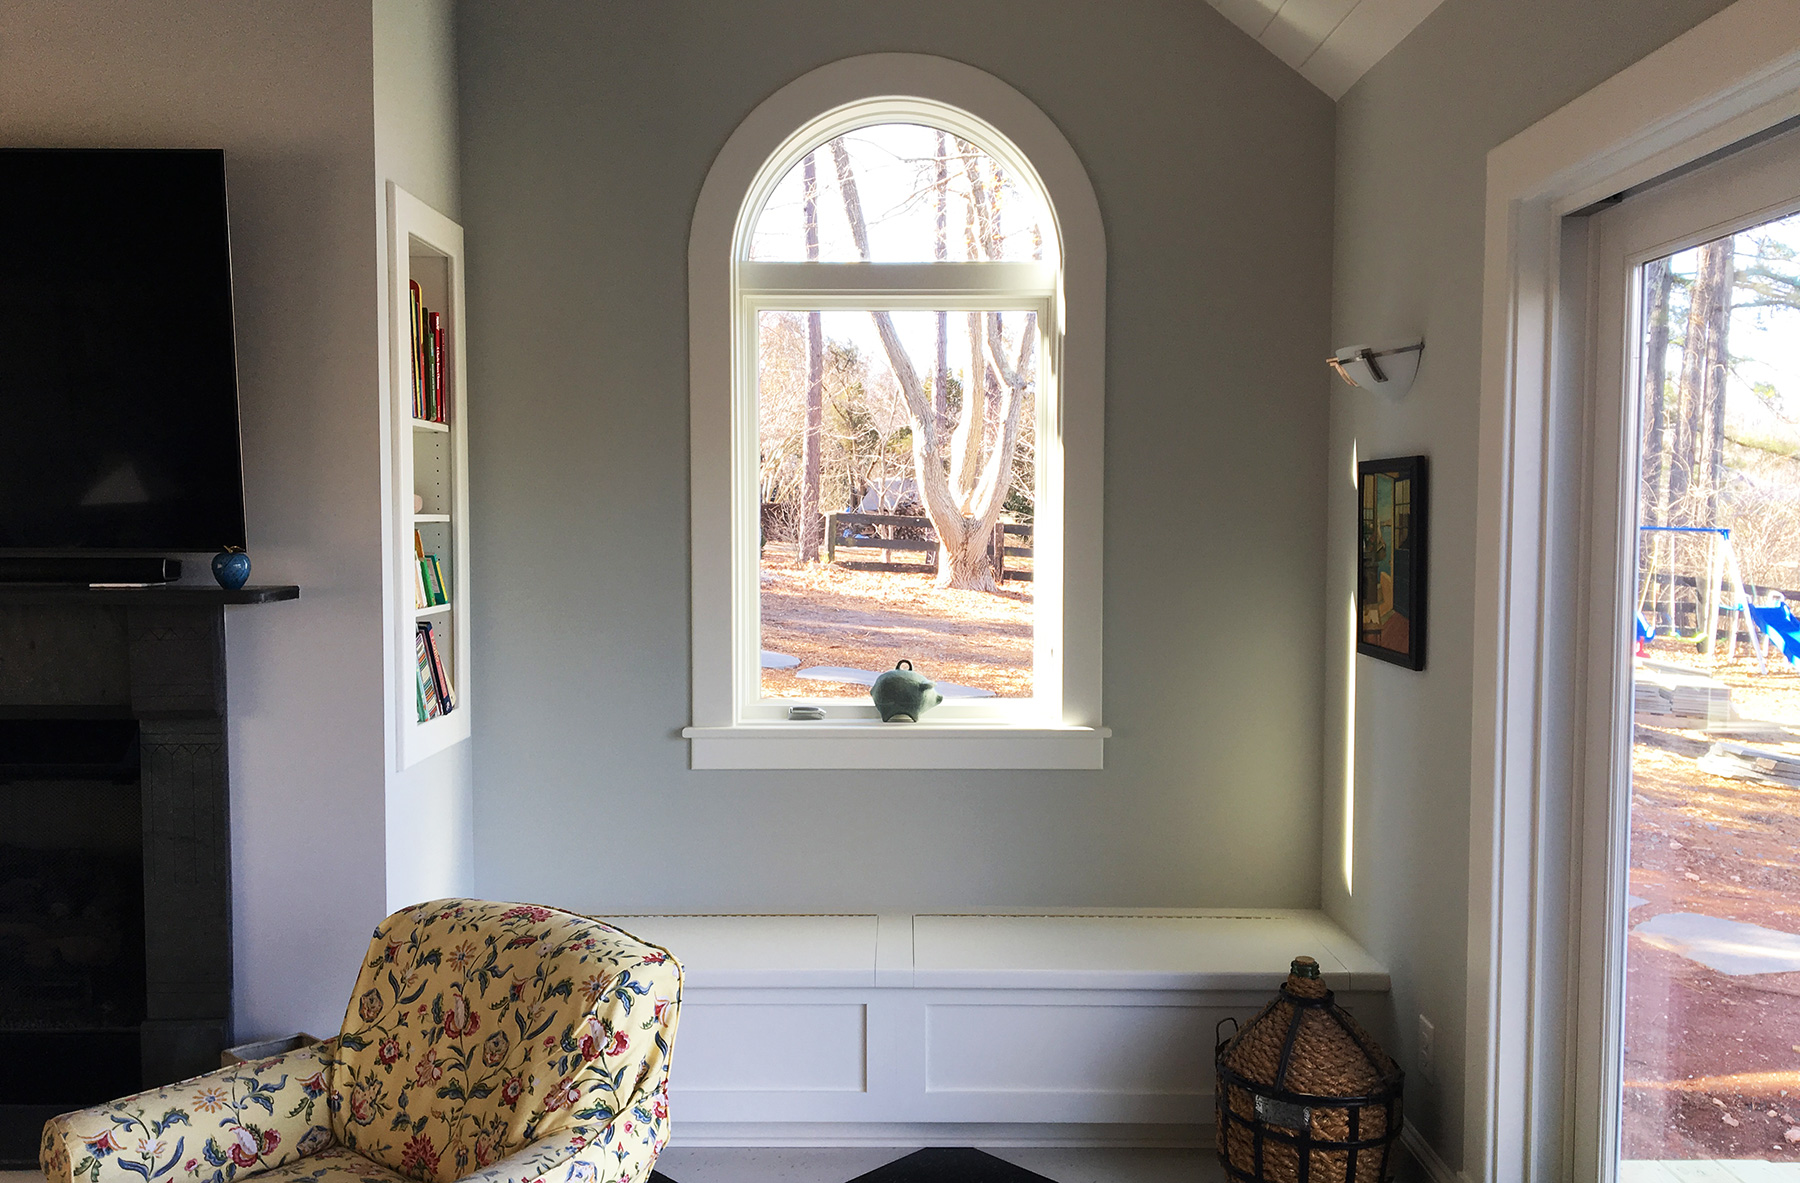 ARCHED WINDOW, BUILT-IN SHELF AND BENCH WITH STORAGE